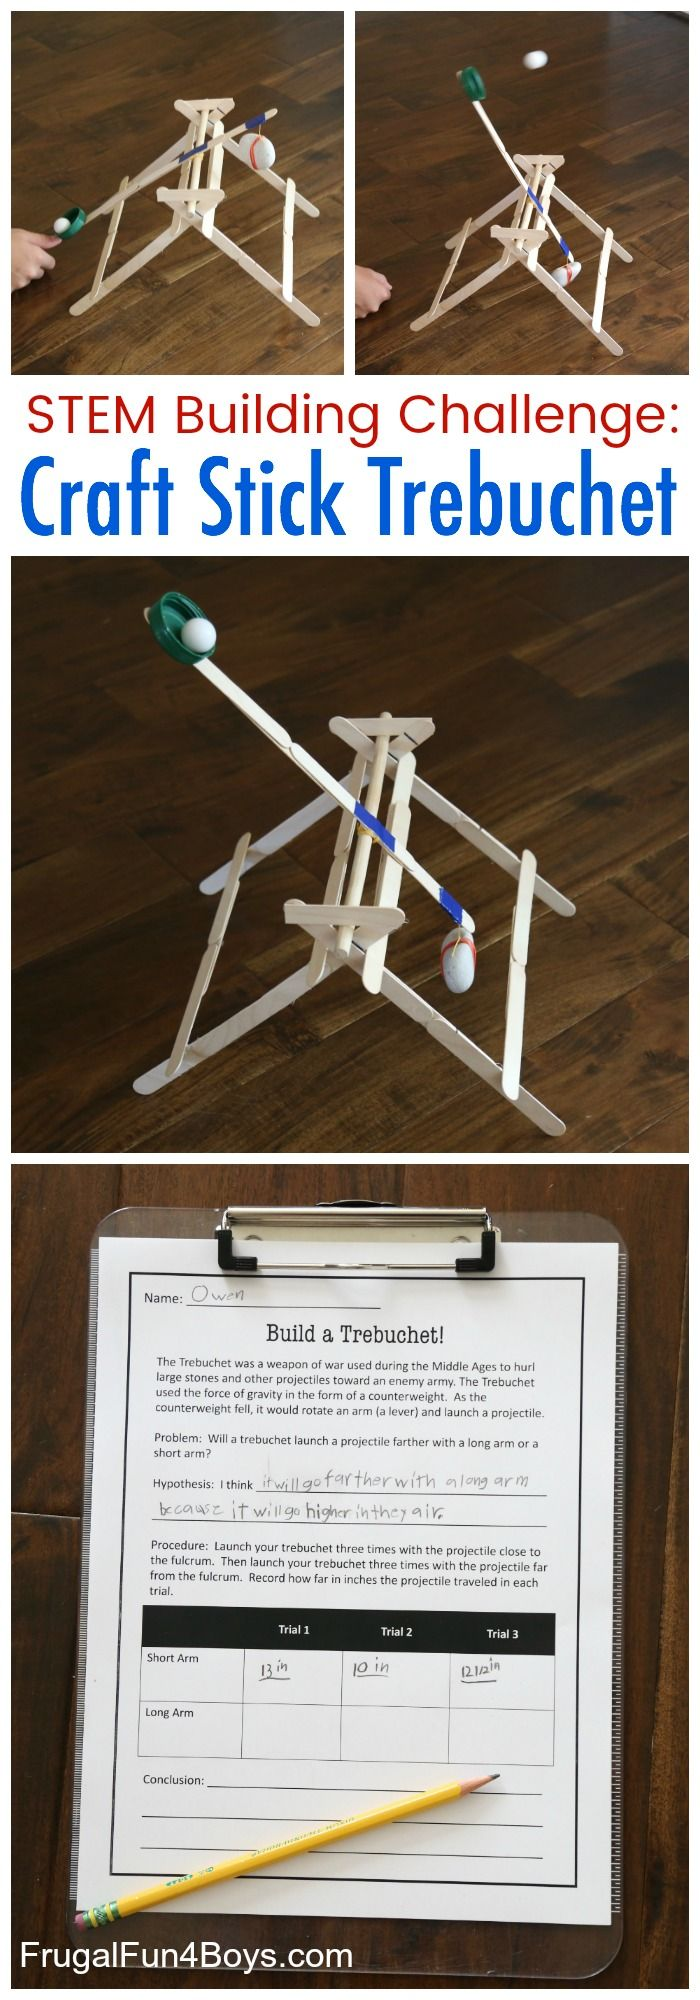 241 Best Stem And Steam Images On Pinterest Activities Day Labeled Trebuchet Diagram Catapult Amazon De Build Test Your Own Craft Stick